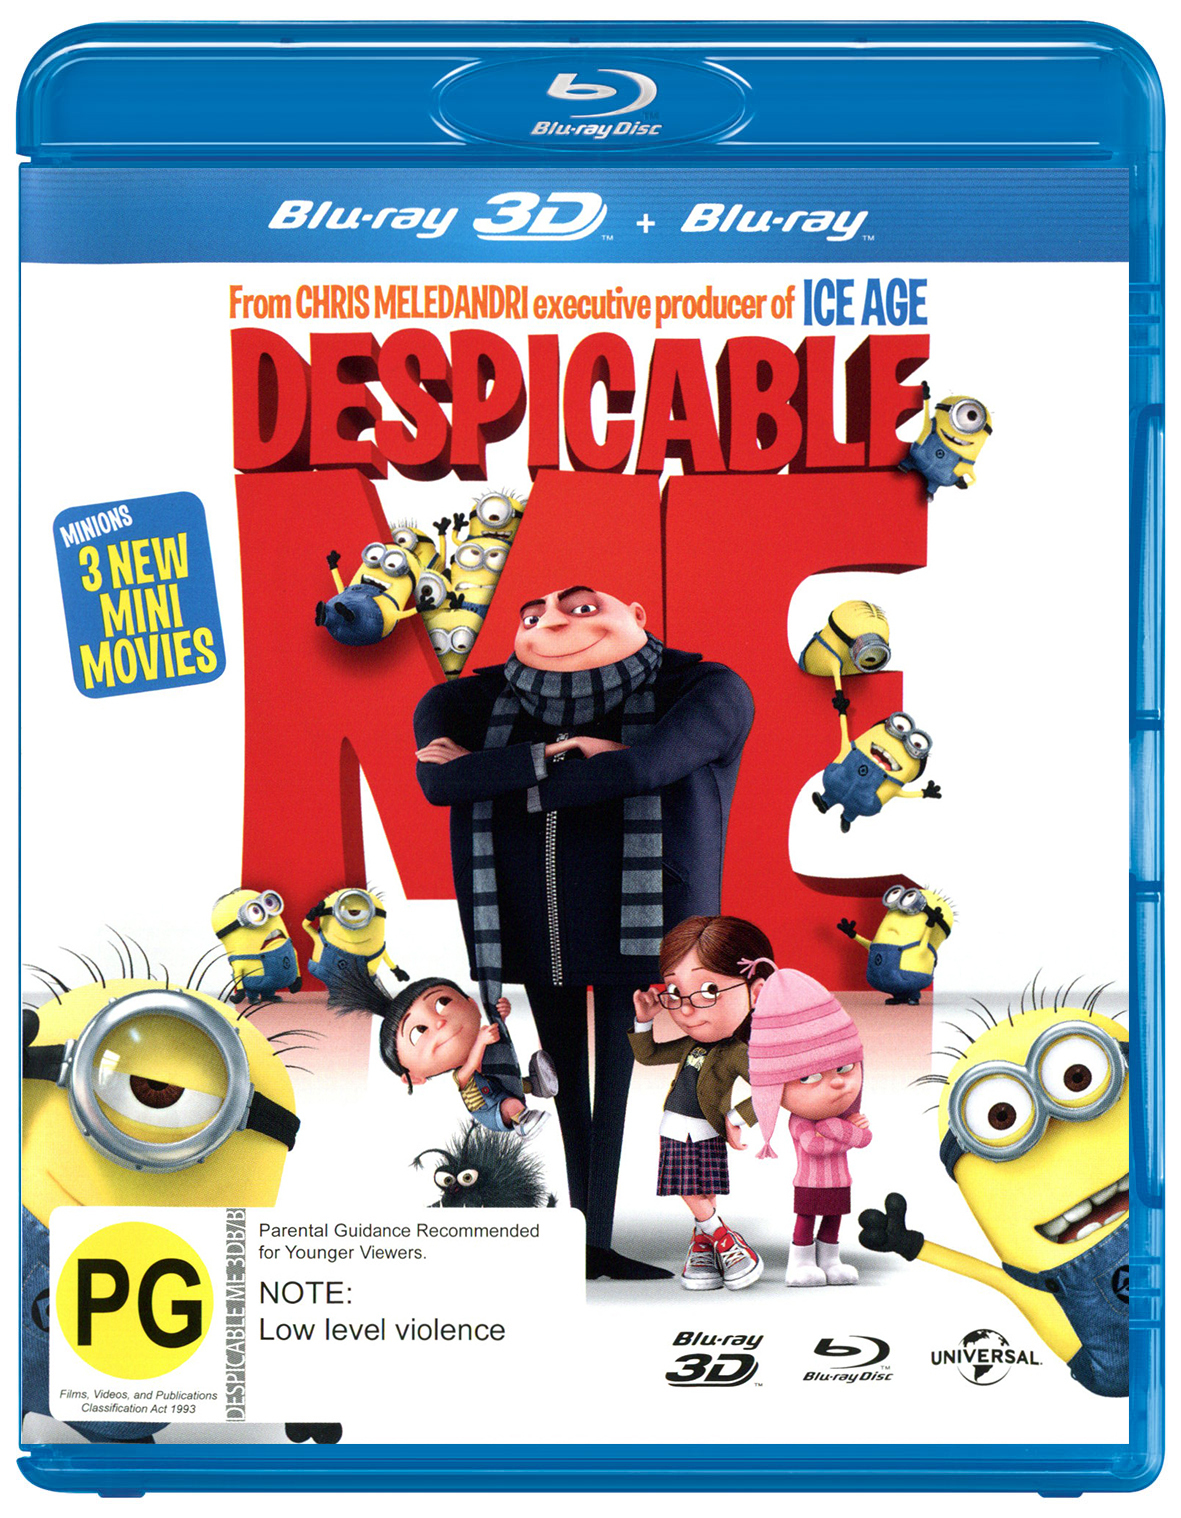 Despicable Me on Blu-ray, 3D Blu-ray image